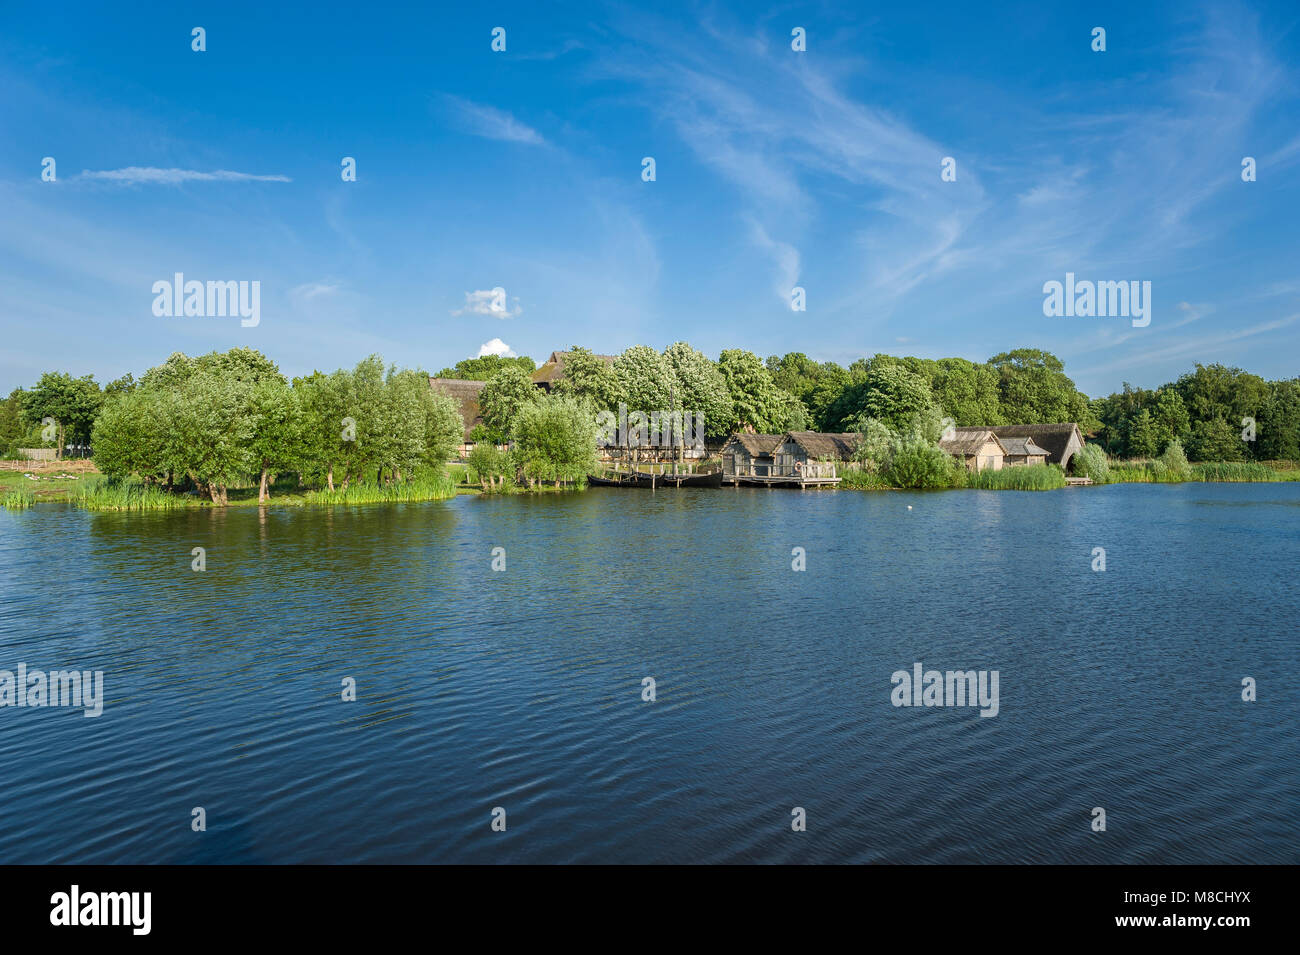 Wallmuseum slavic village wit the lake Wallsee, Oldenburg in Holstein, Baltic Sea, Schleswig-Holstein, Germany, - Stock Image